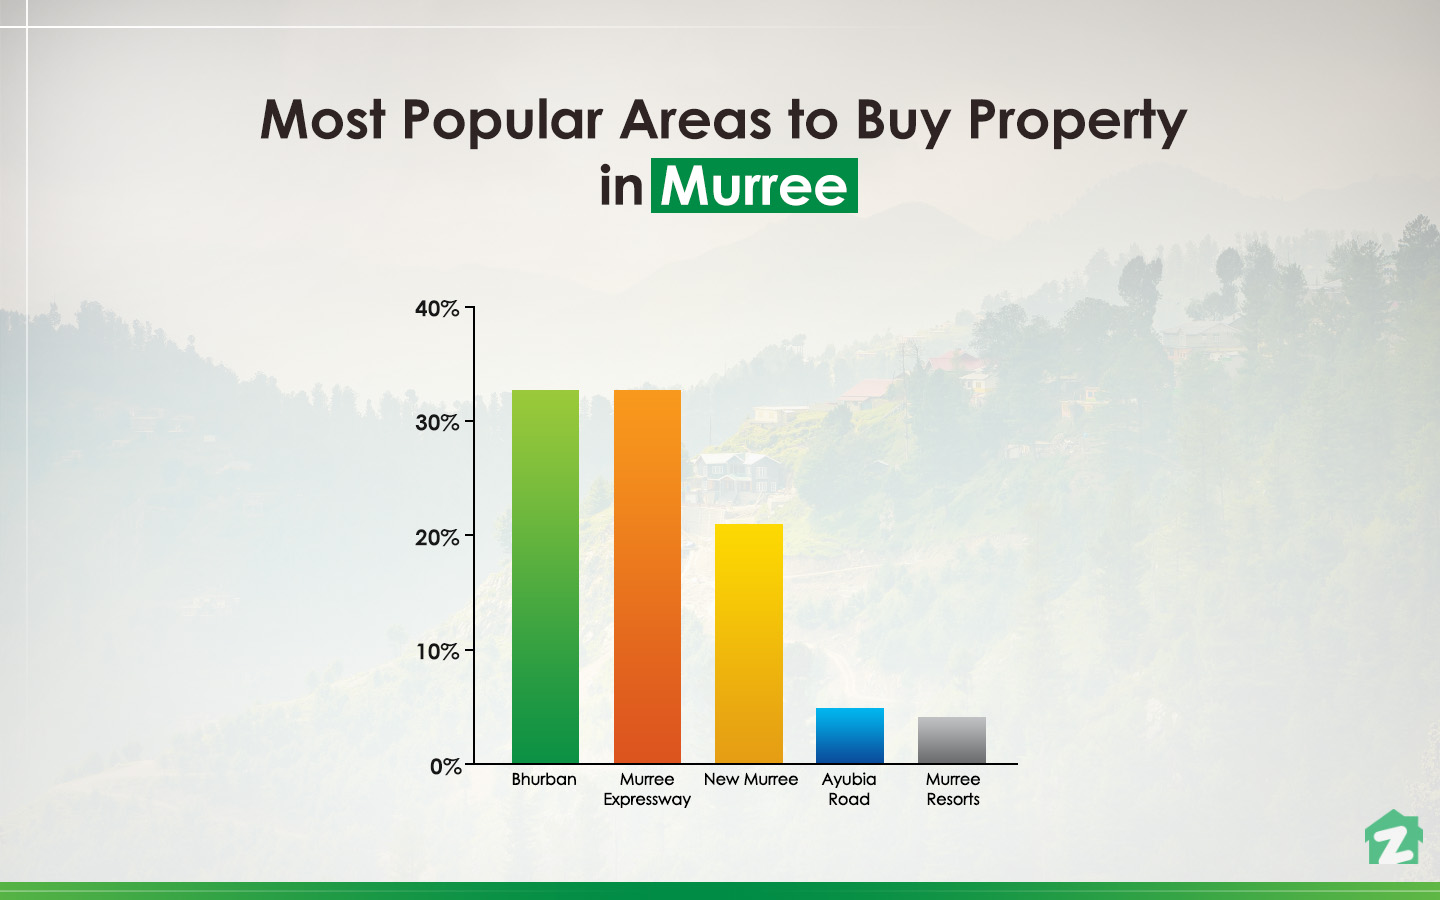 Most popular areas to buy property in Murree